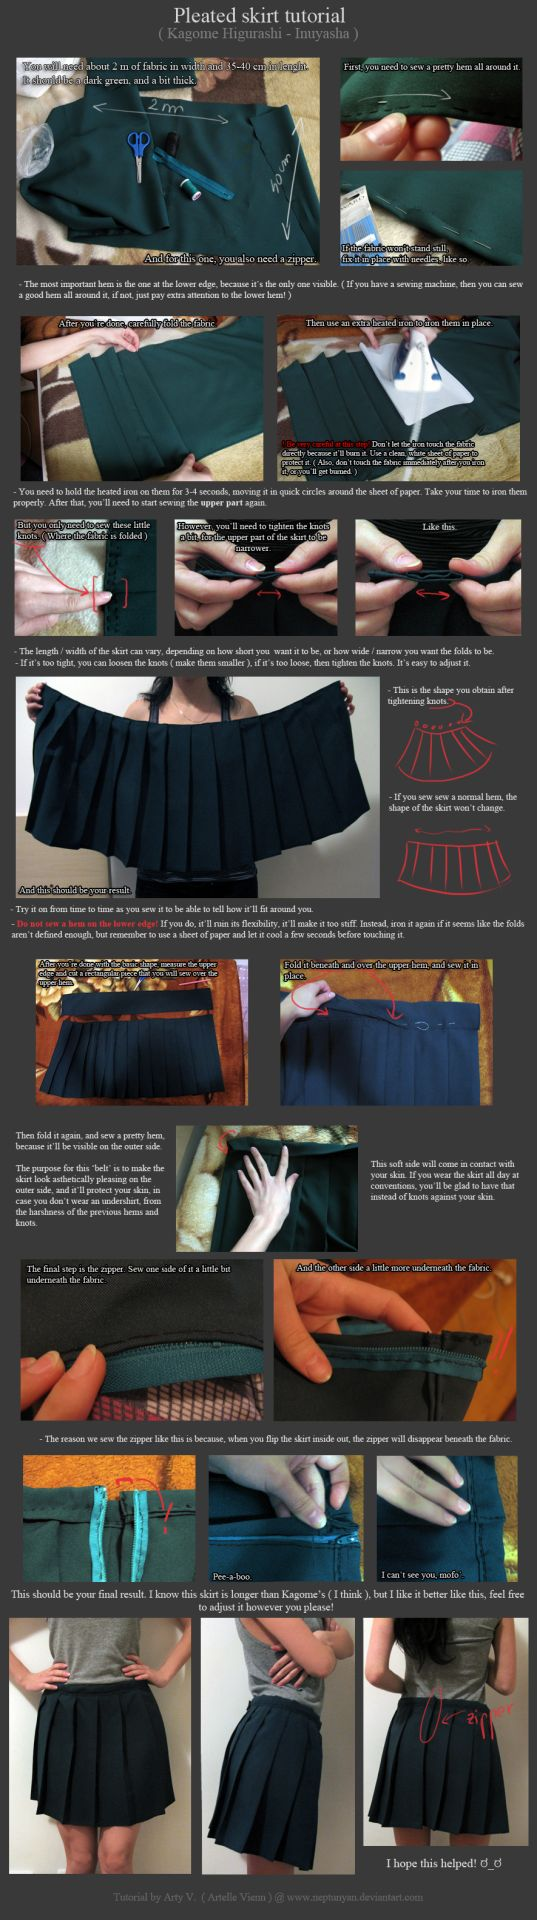 cosplaytutorial: Pleated skirt tutorial - Kagome Higurashi. by neptunyanView the full tutorial here:http://neptunyan.deviantart.com/art/Pleated-skirt-tutorial-Kagome-Higurashi-438872001